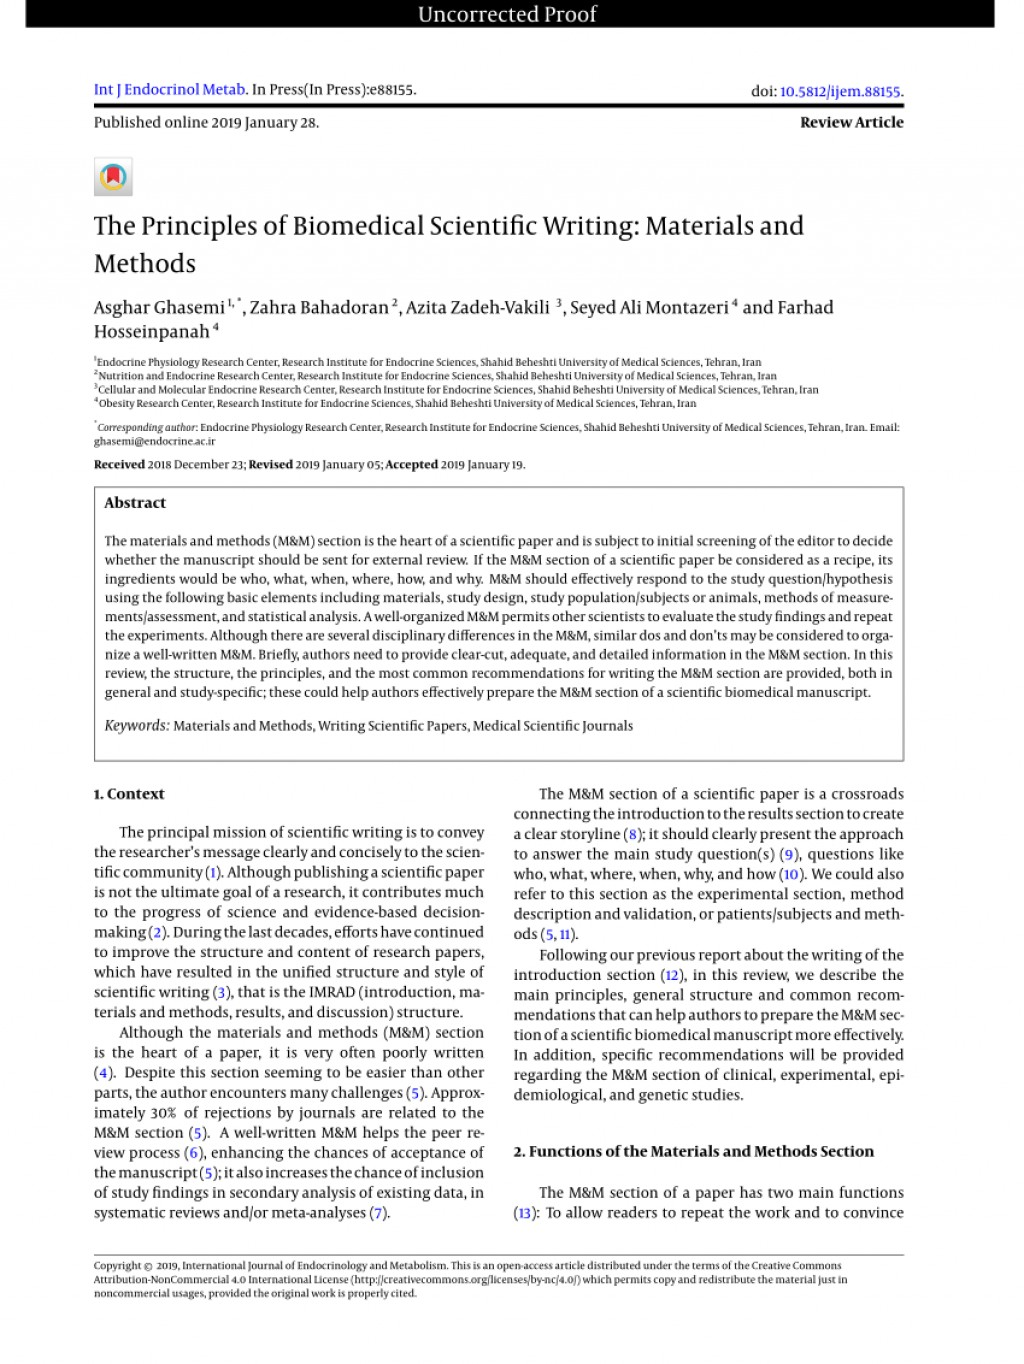 001 Example Of Materials And Methods Section Research Paper Wonderful A Large